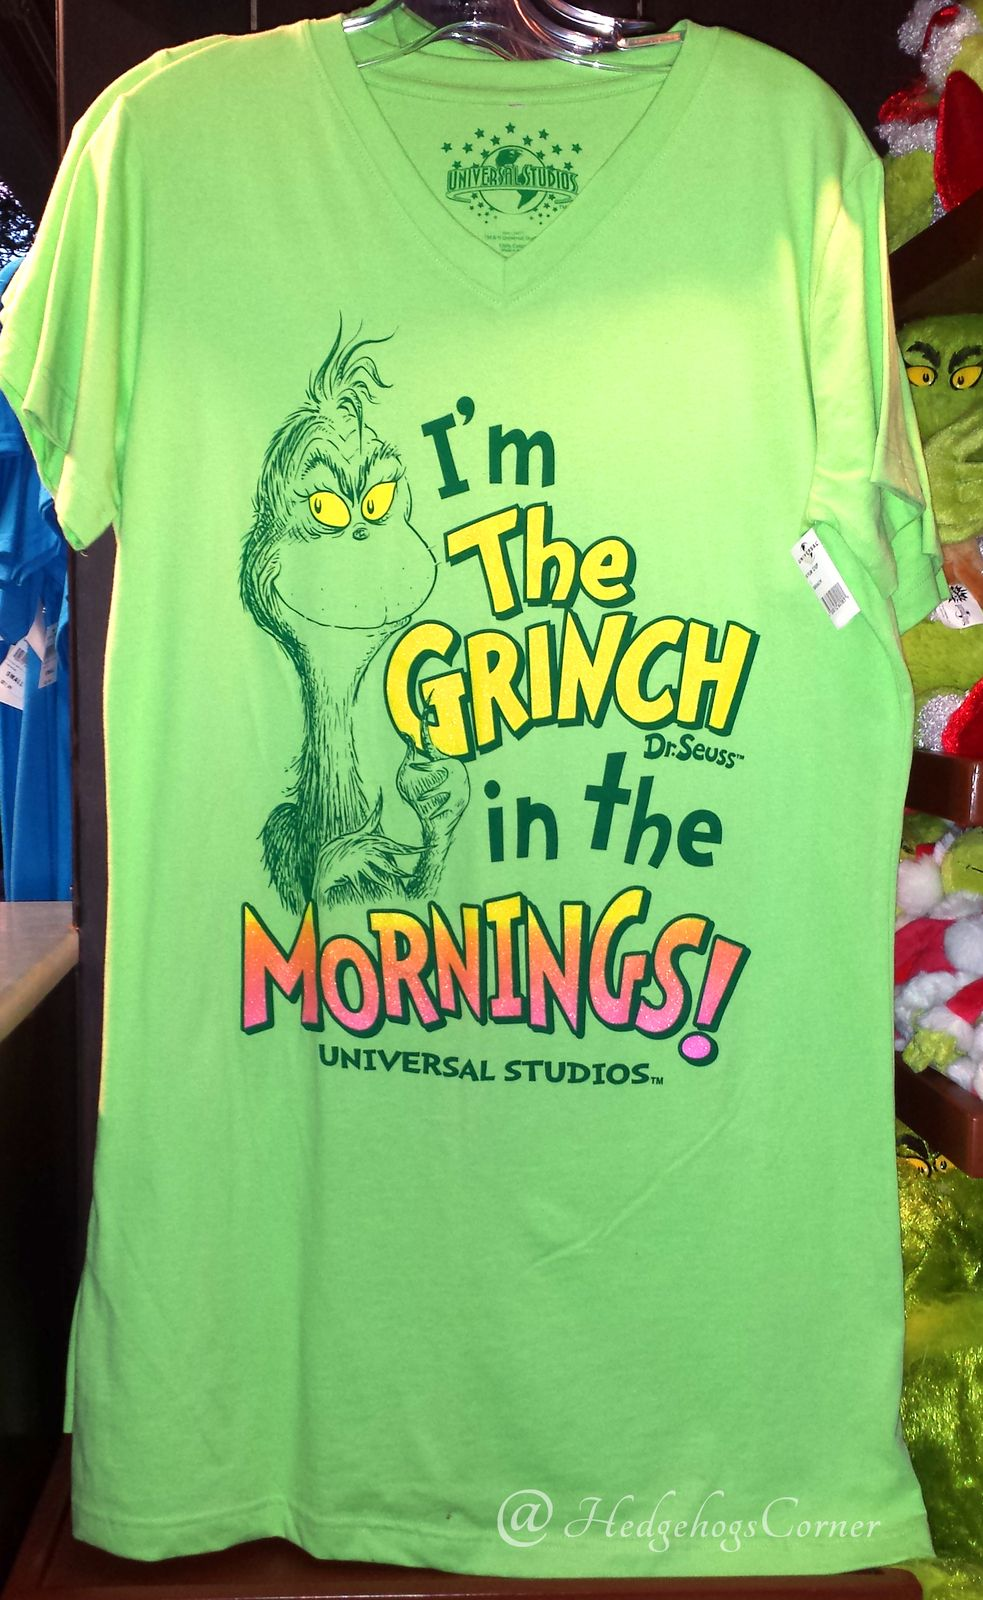 Dr Seuss I m The Grinch in the Mornings! Nightgown Sleep Shirt Authentic  NEW  hedgehogscorner- select size abf8c029e